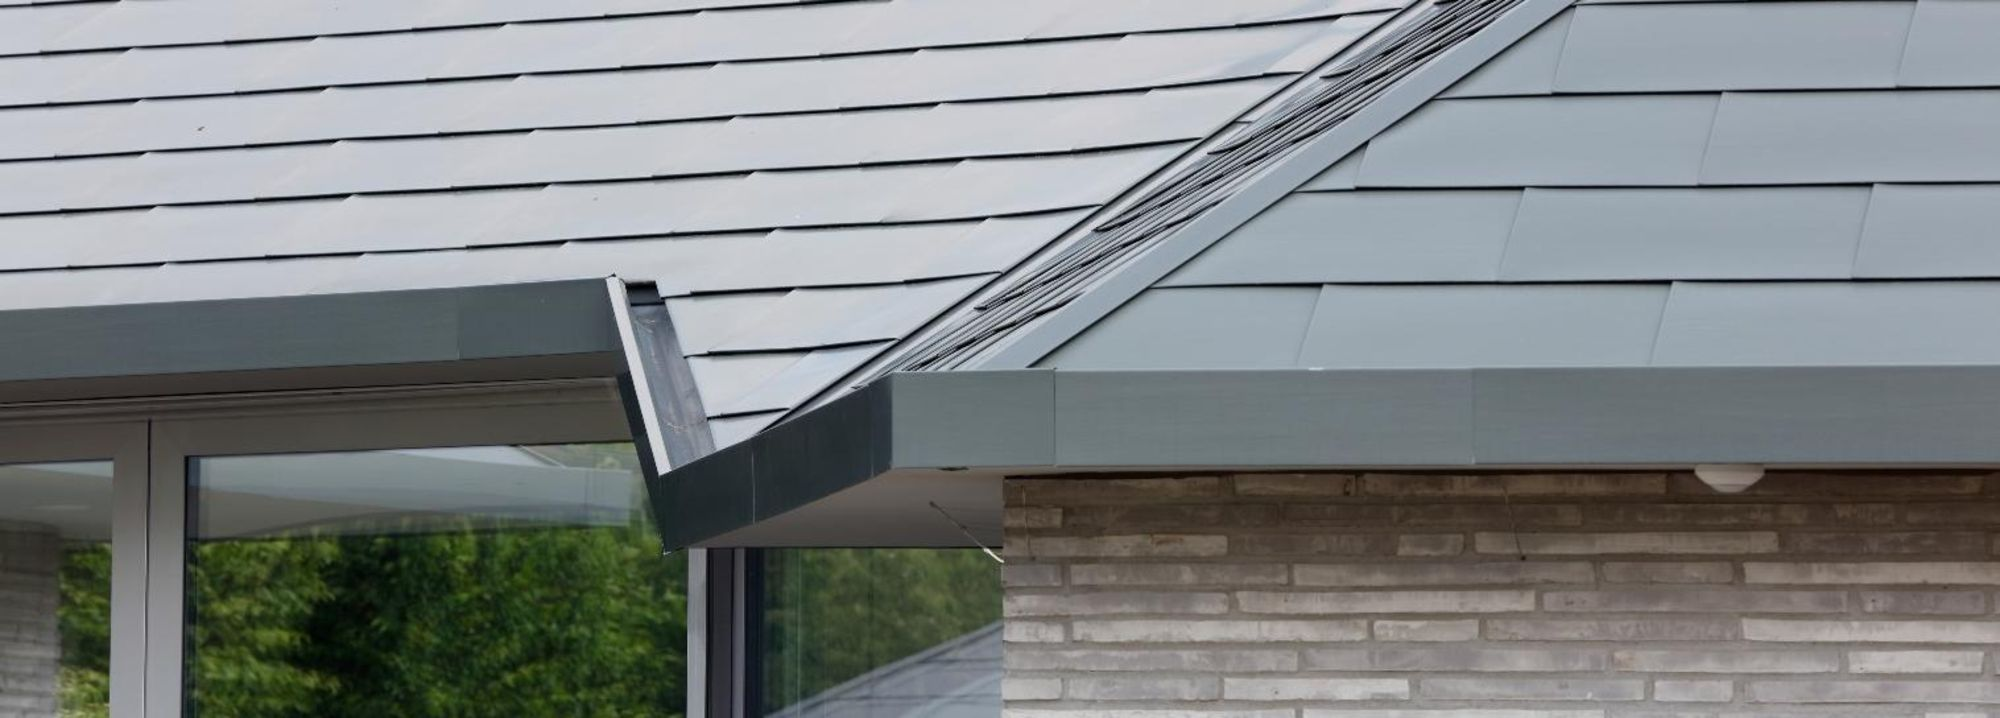 Find Systems For Roofing Online On Rheinzink Com